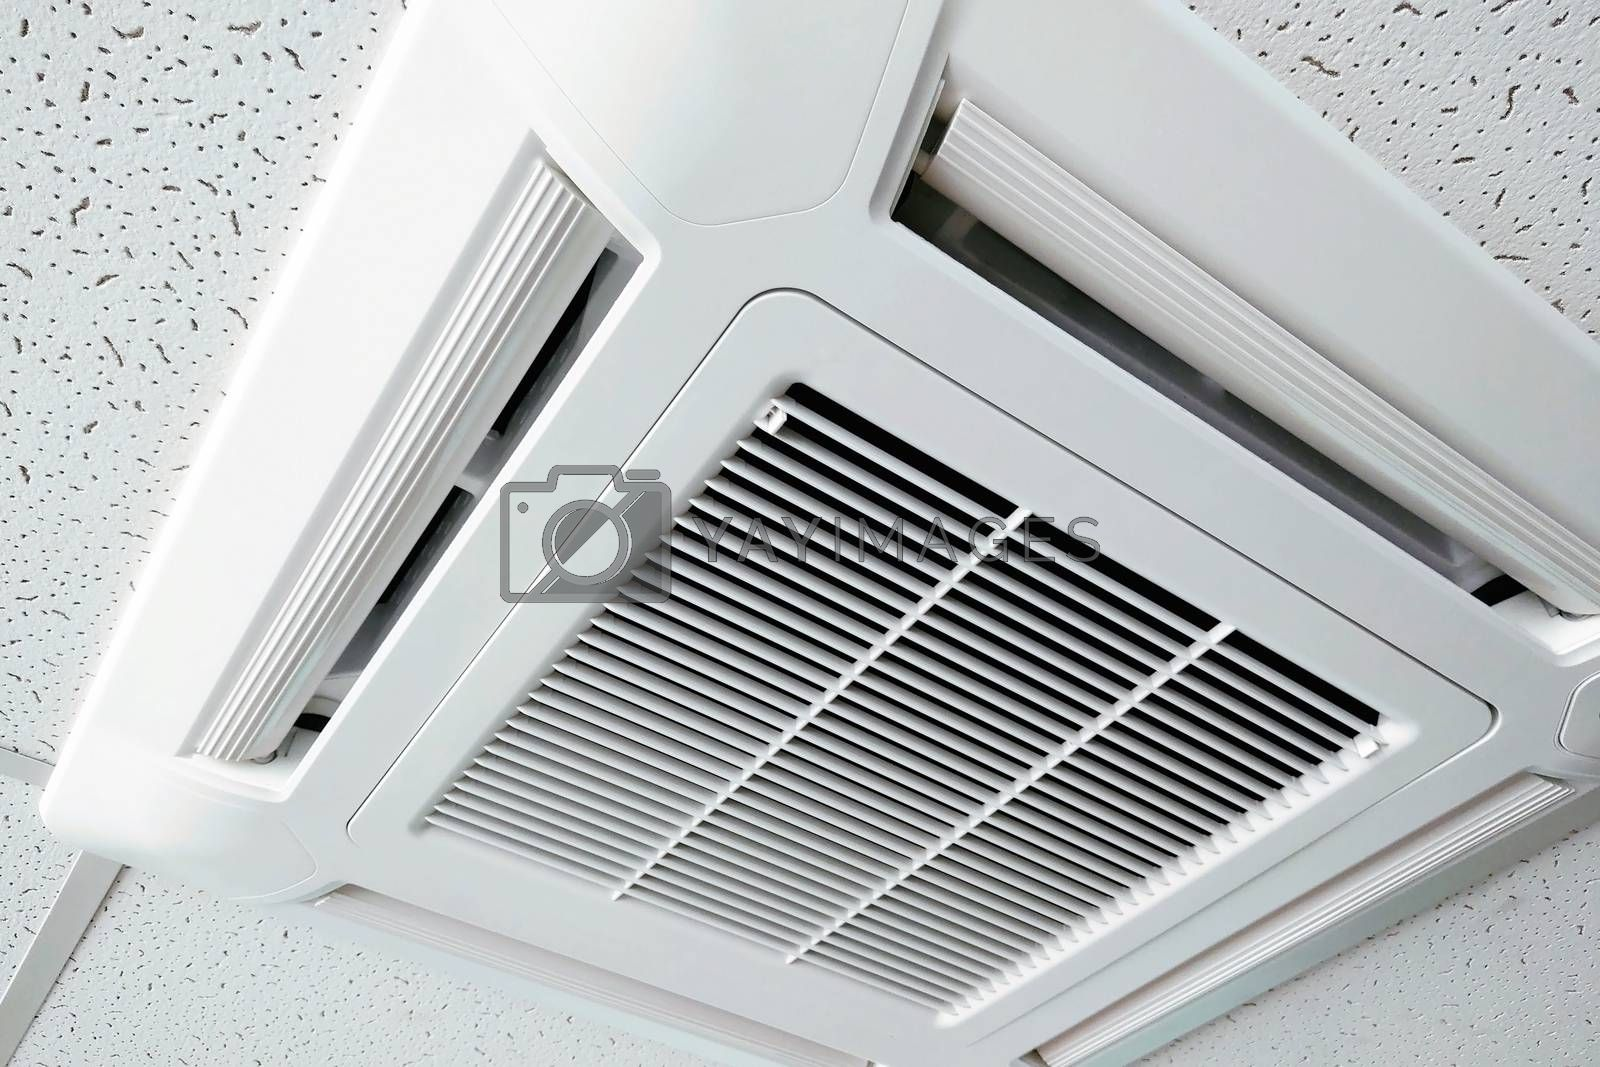 Indoor air conditioner view. Ventilation grill in the ceiling. Fresh clean air